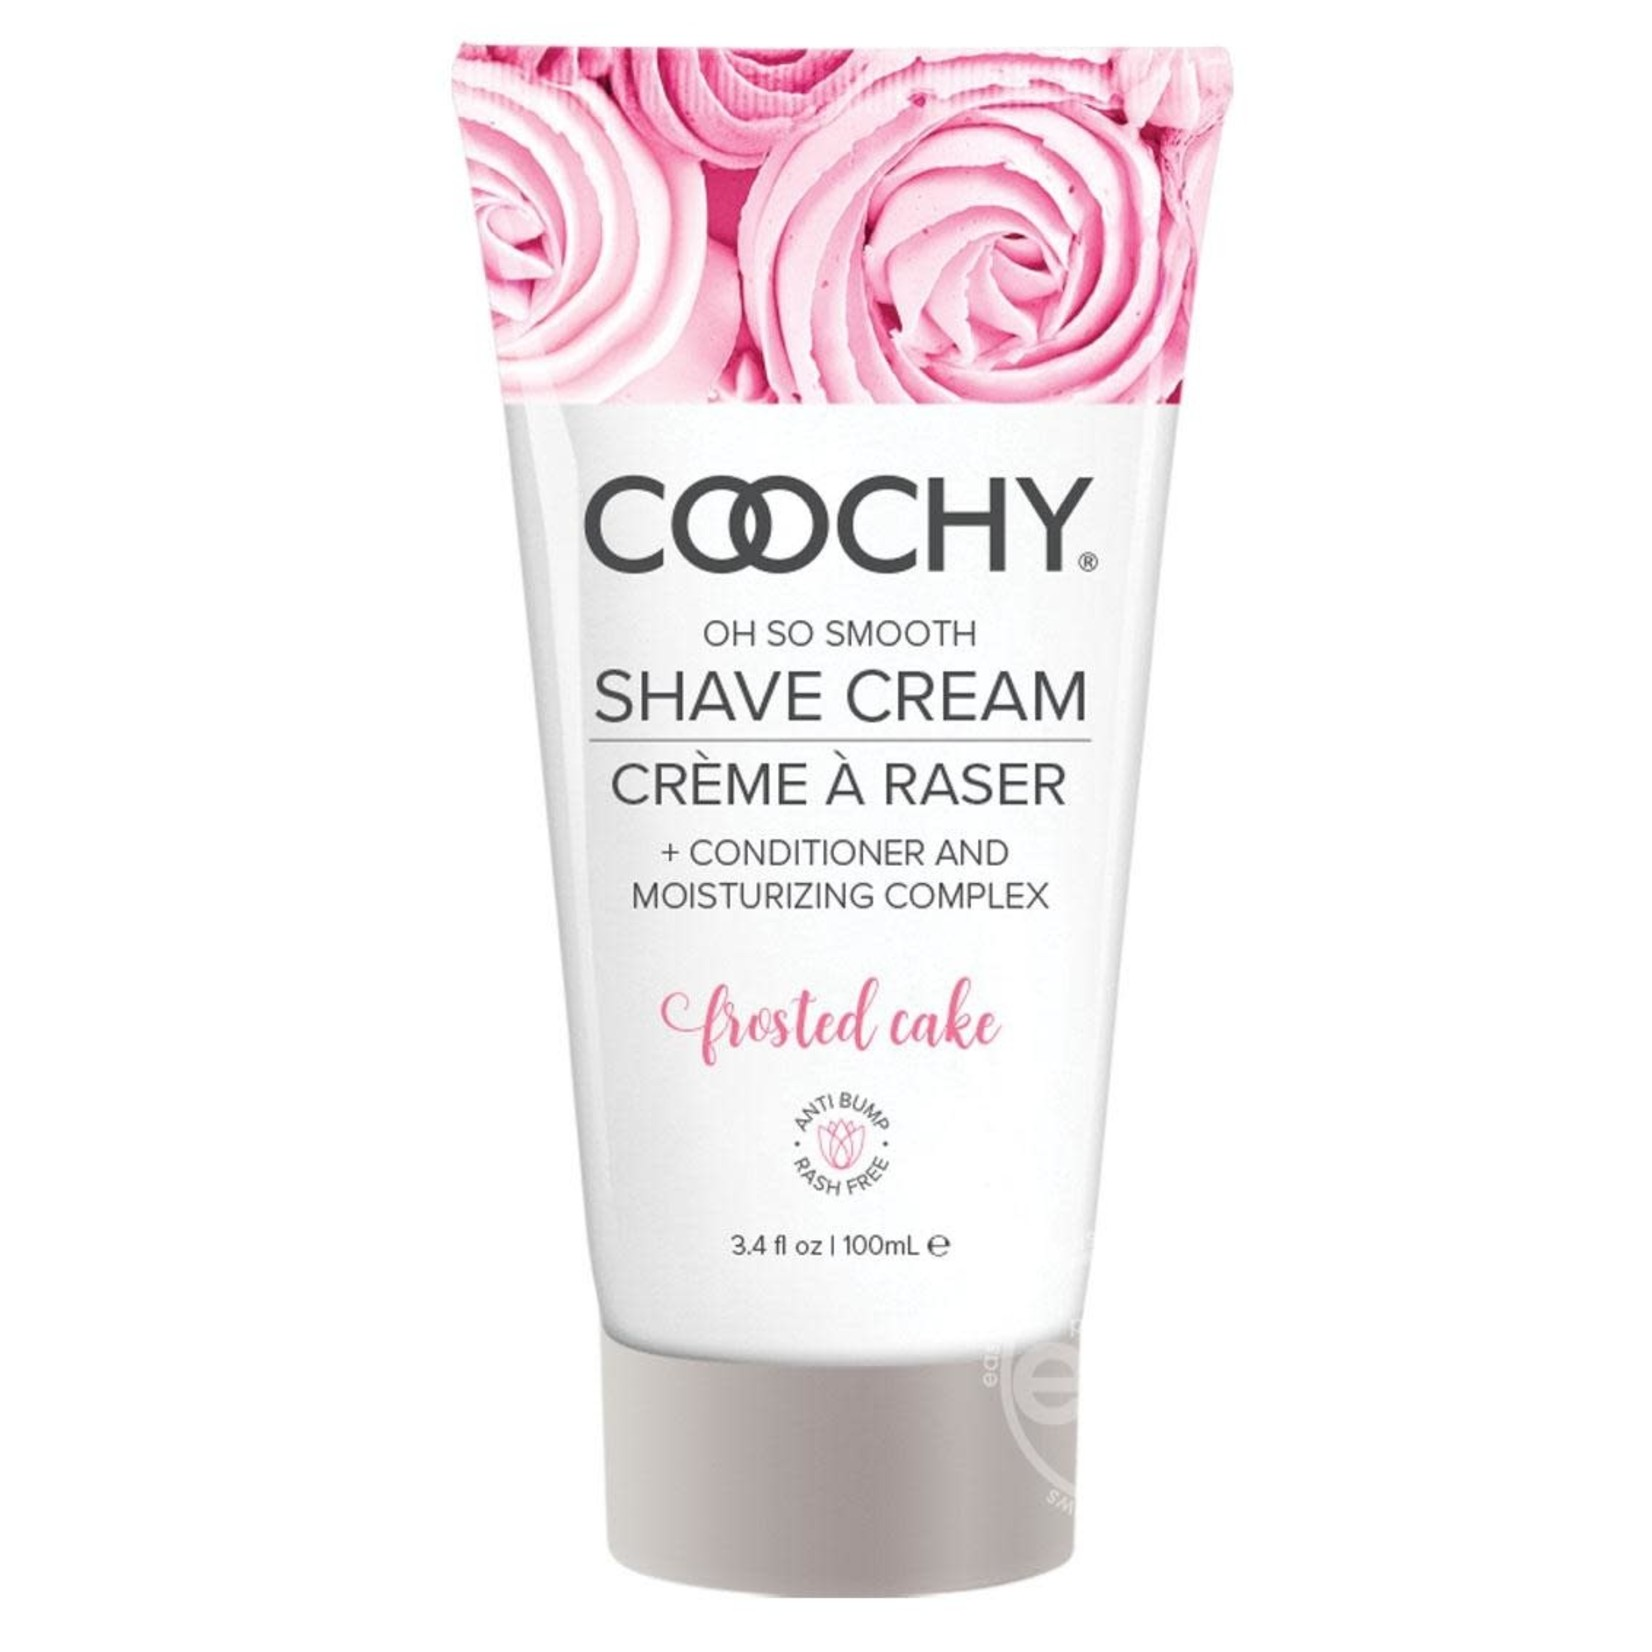 Coochy Shave Cream Frosted Cake 3.4oz